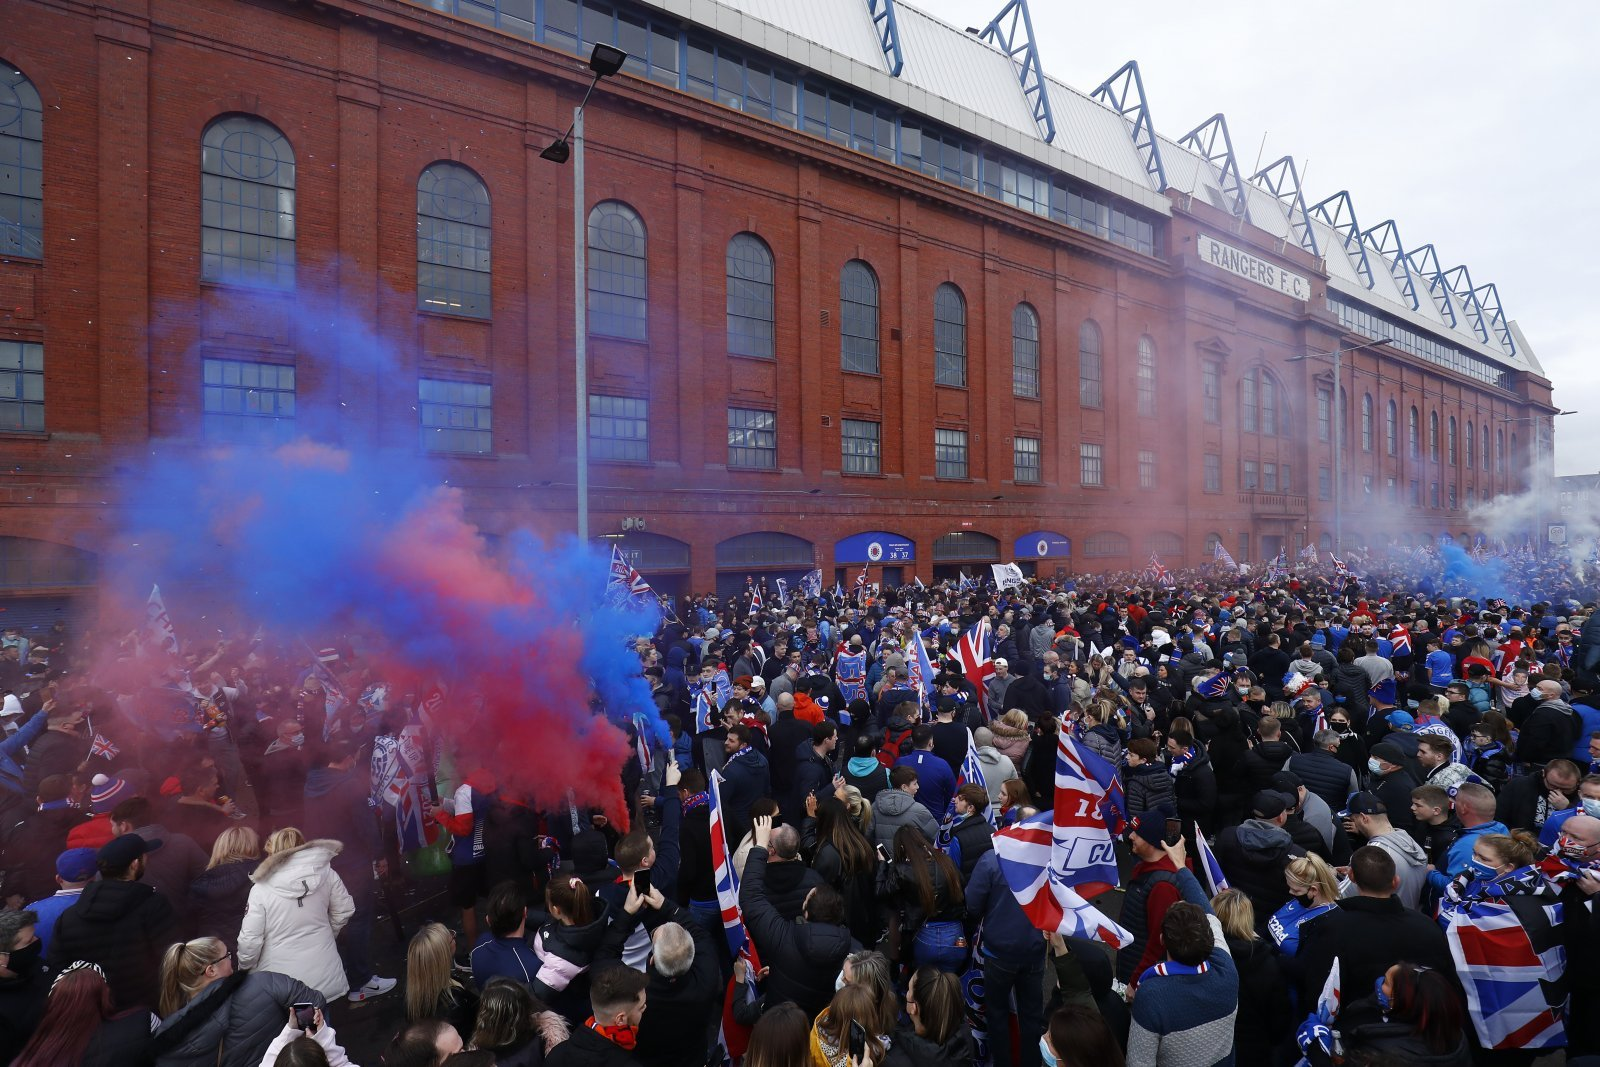 55 wrapped up, things get emotional for Gers fans